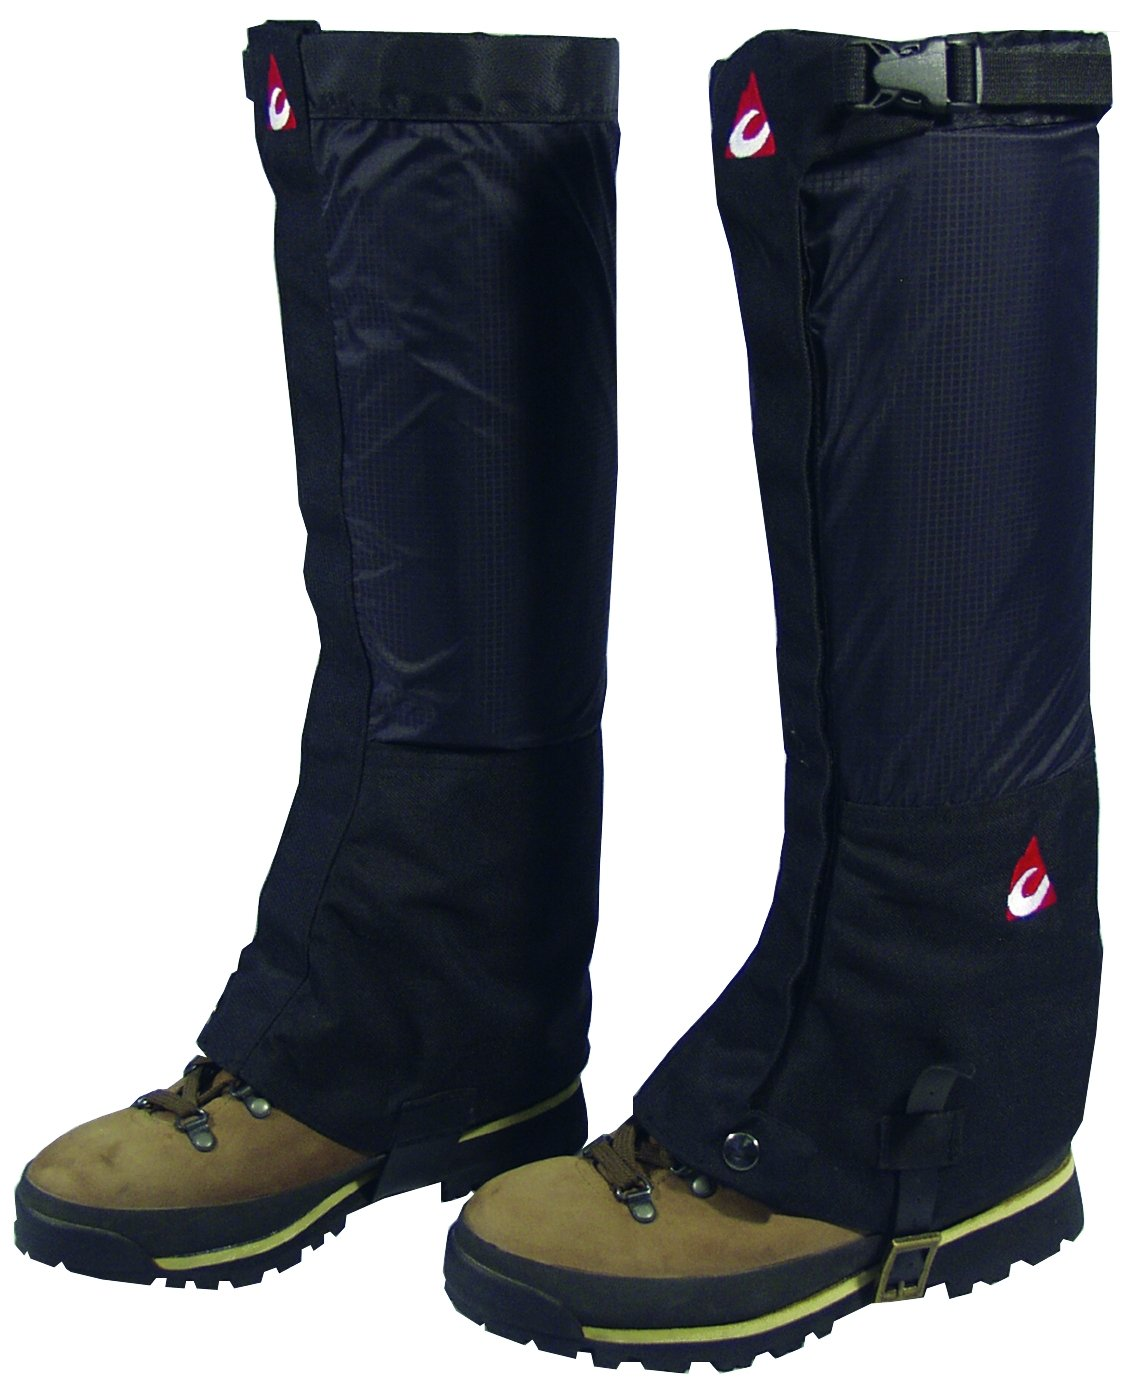 CTO Heavy Duty Backcountry Gaiters, Large by CTO